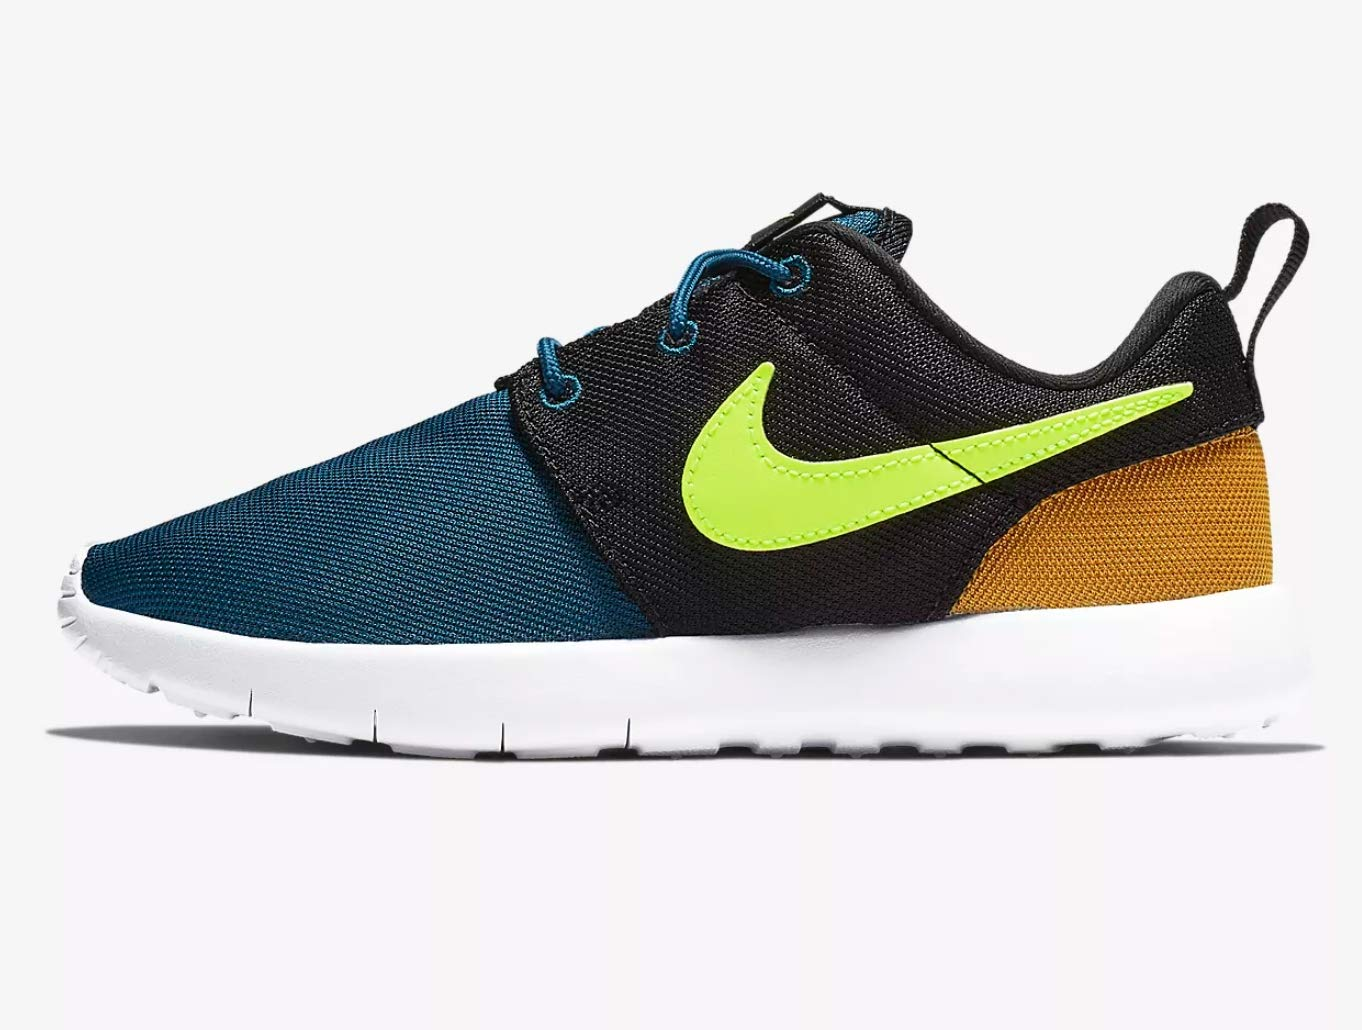 de5be57a76e98 Galleon - NIKE Roshe One (ps) Little Kids 749427-427 Size 1